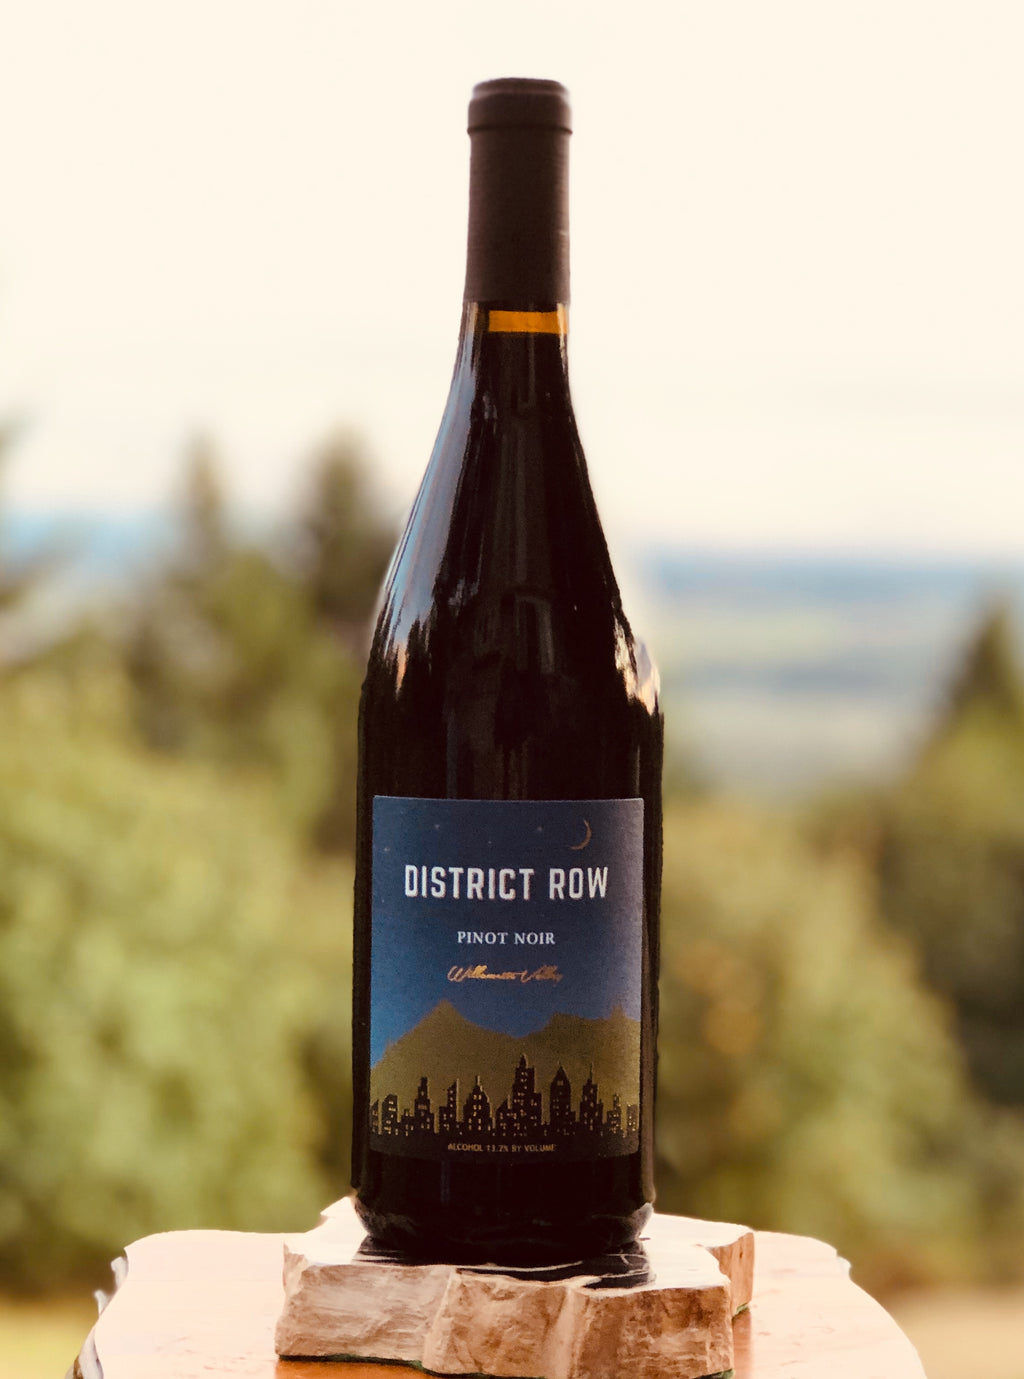 District Row Pinot Noir